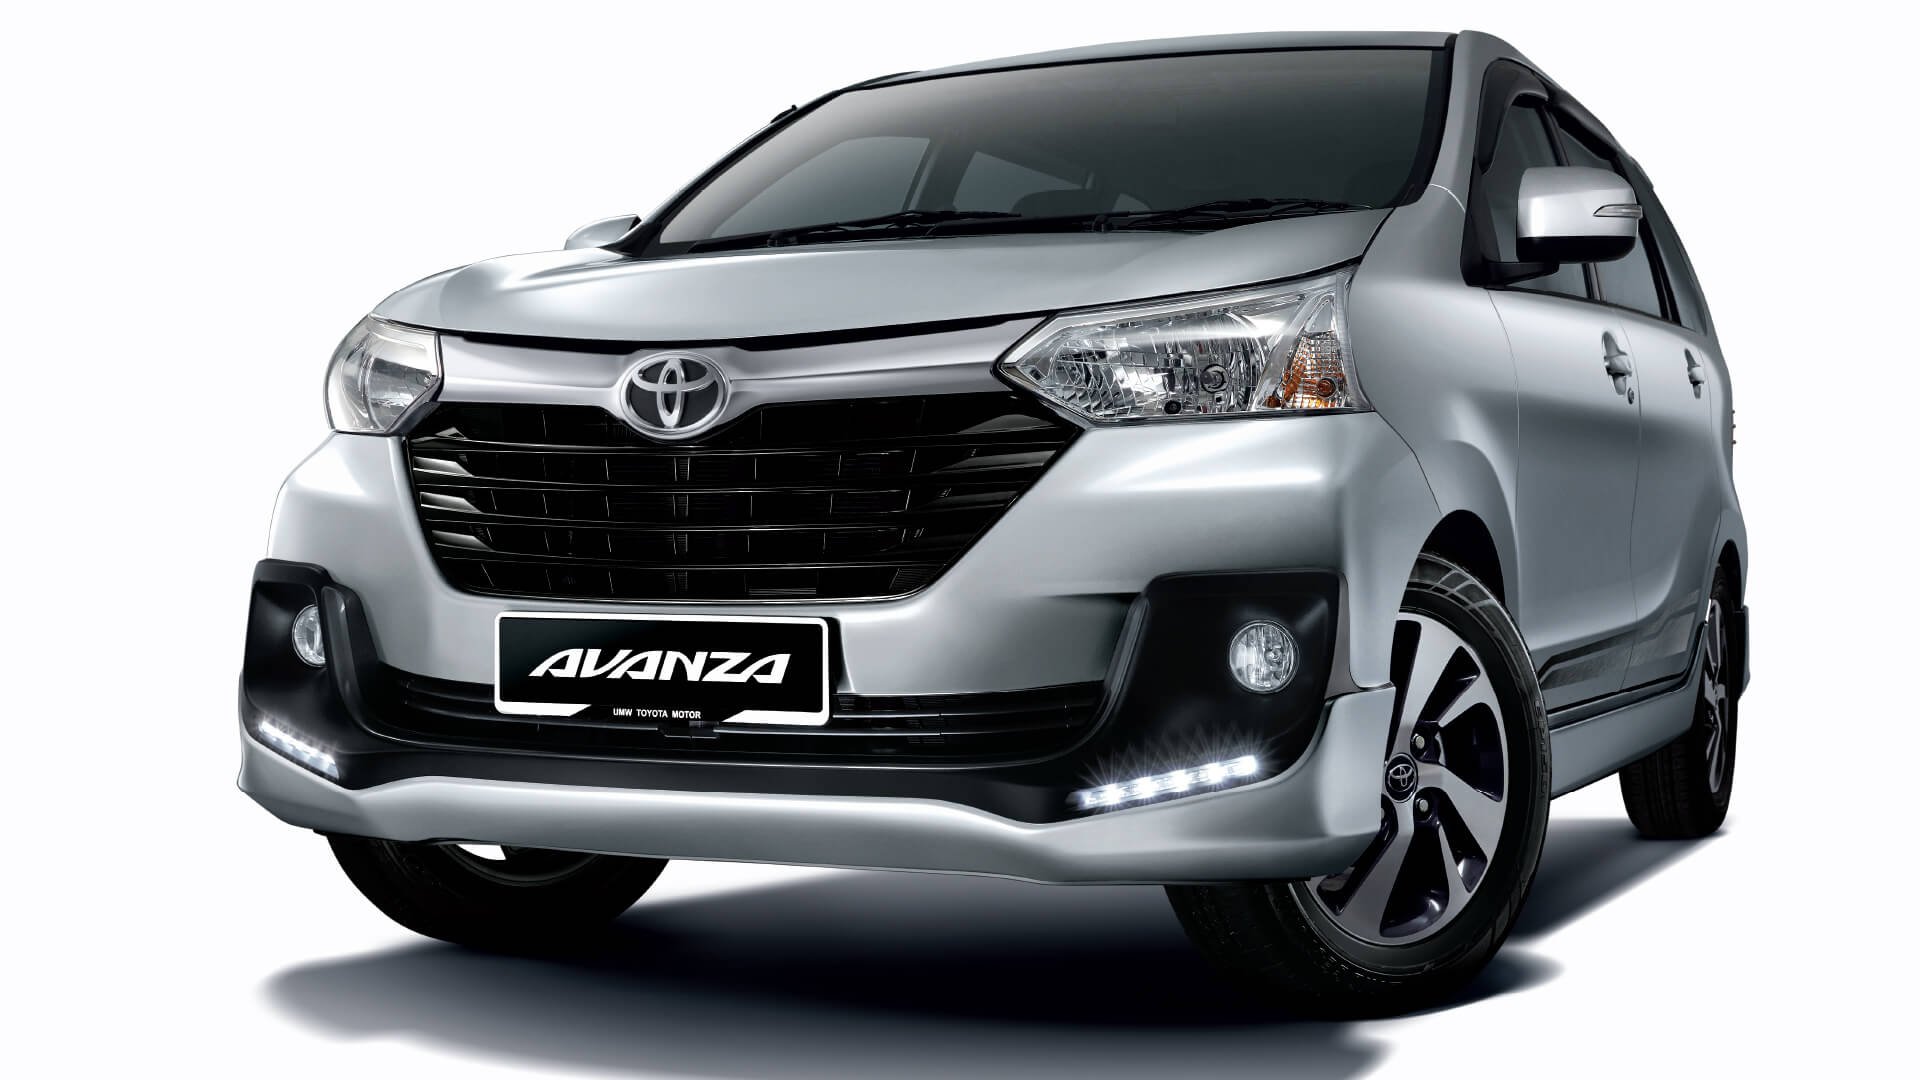 all new camry singapore alphard bandung toyota avanza front side view - upcoming cars in 2018 2019 ...